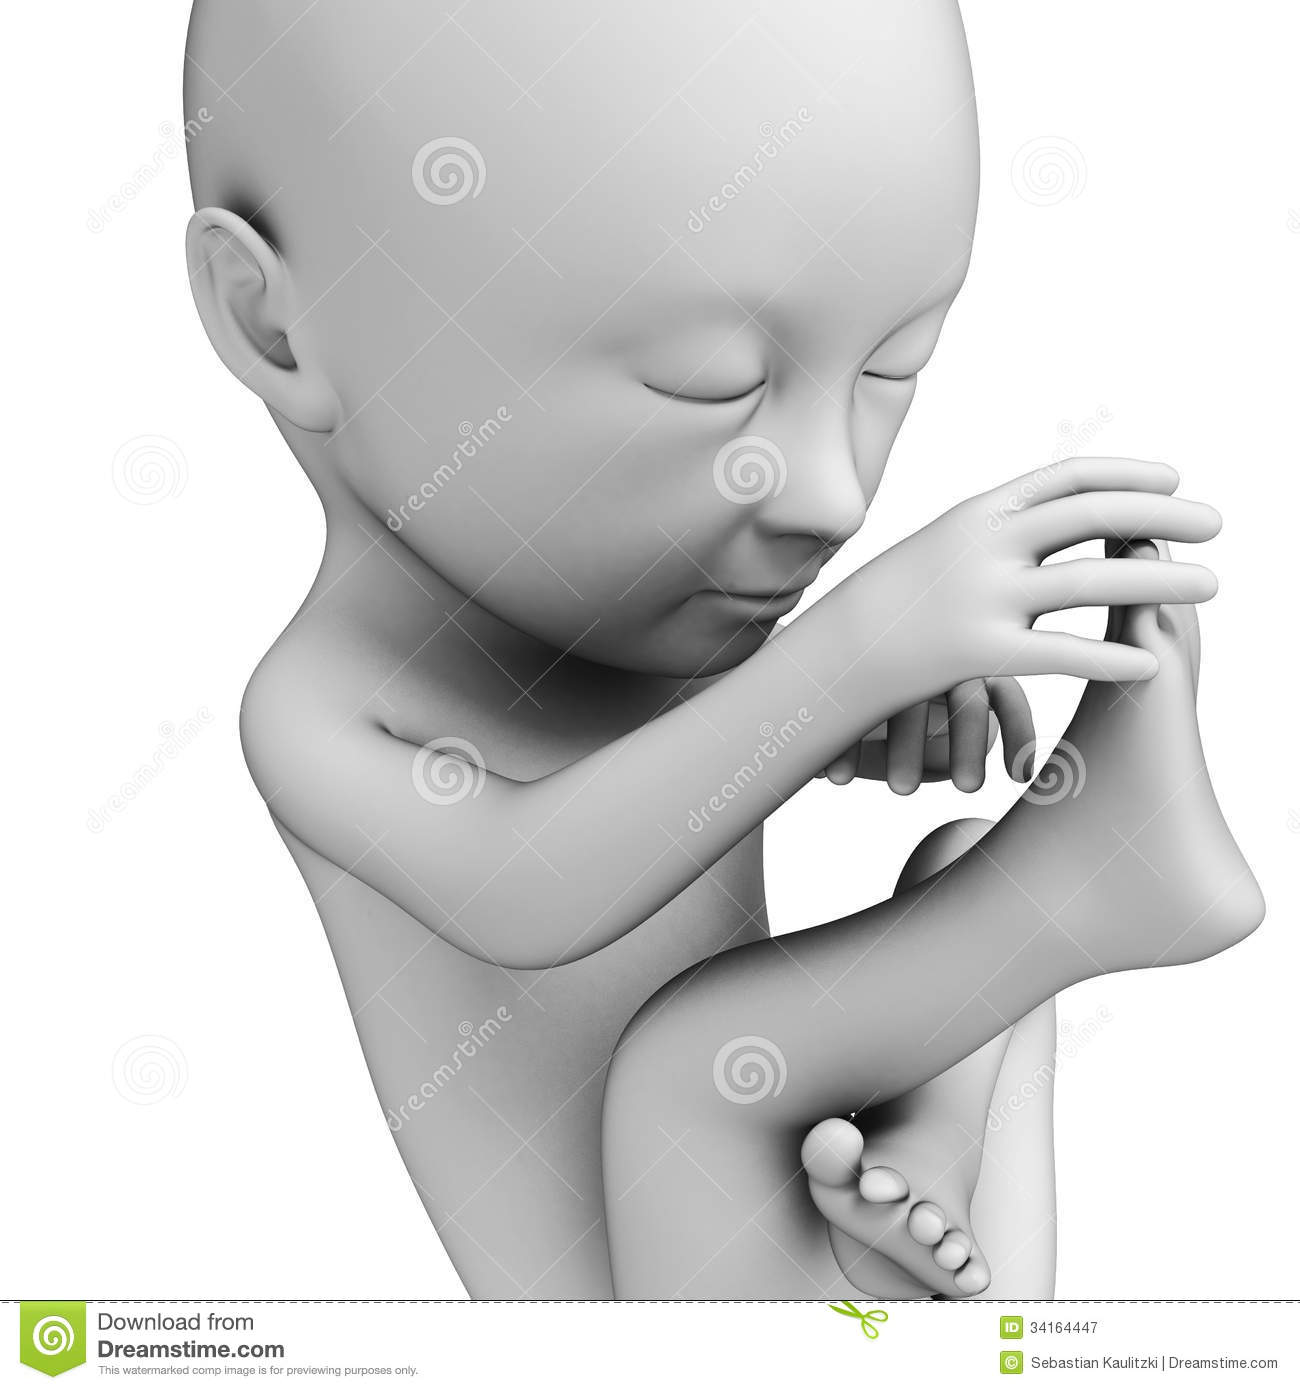 3d rendered illustration of a fetus  month 7 Fetus Illustration